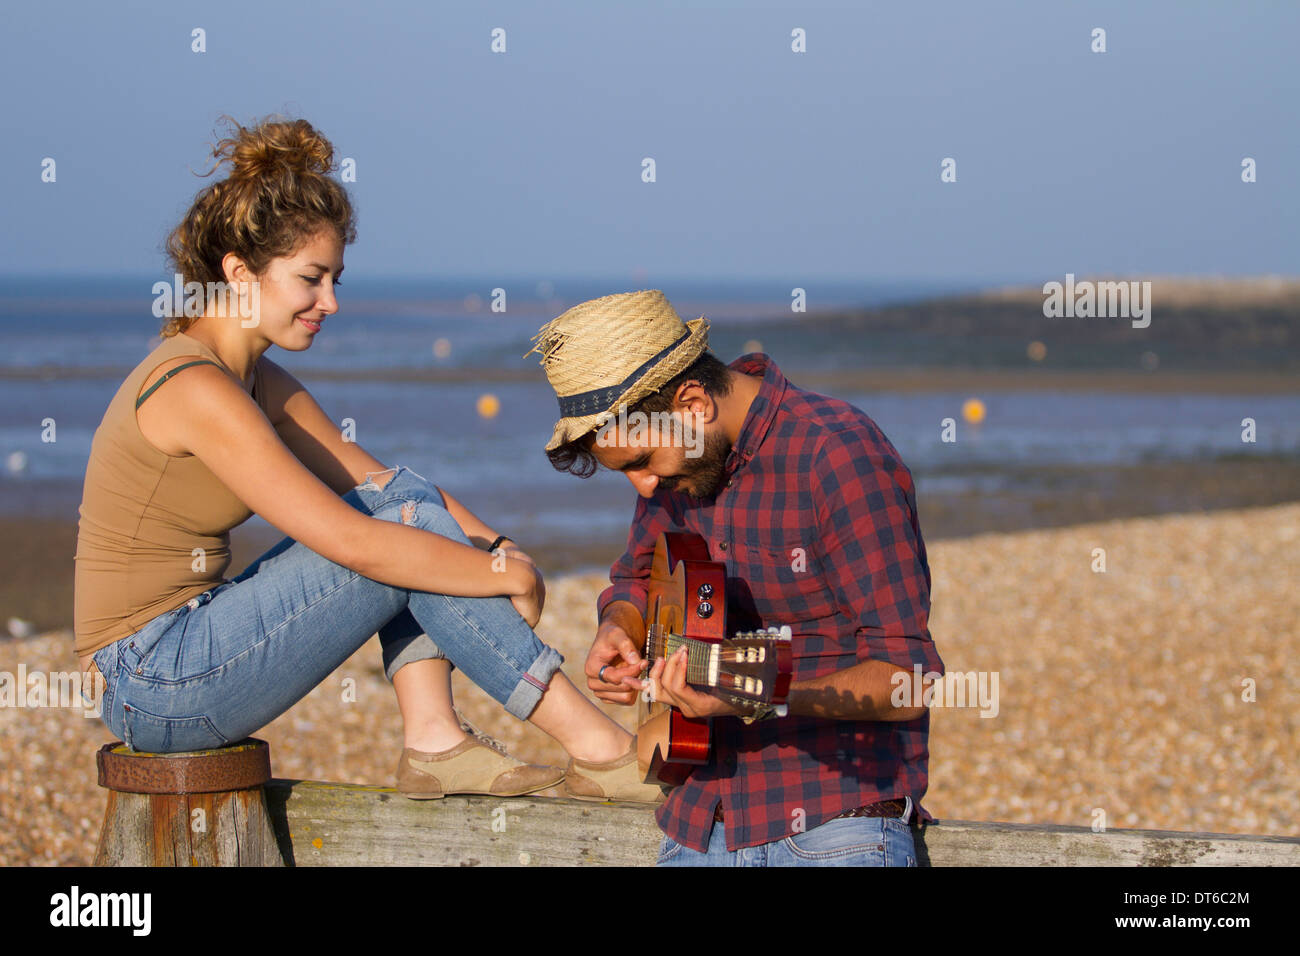 Young couple on beach, man playing guitar - Stock Image